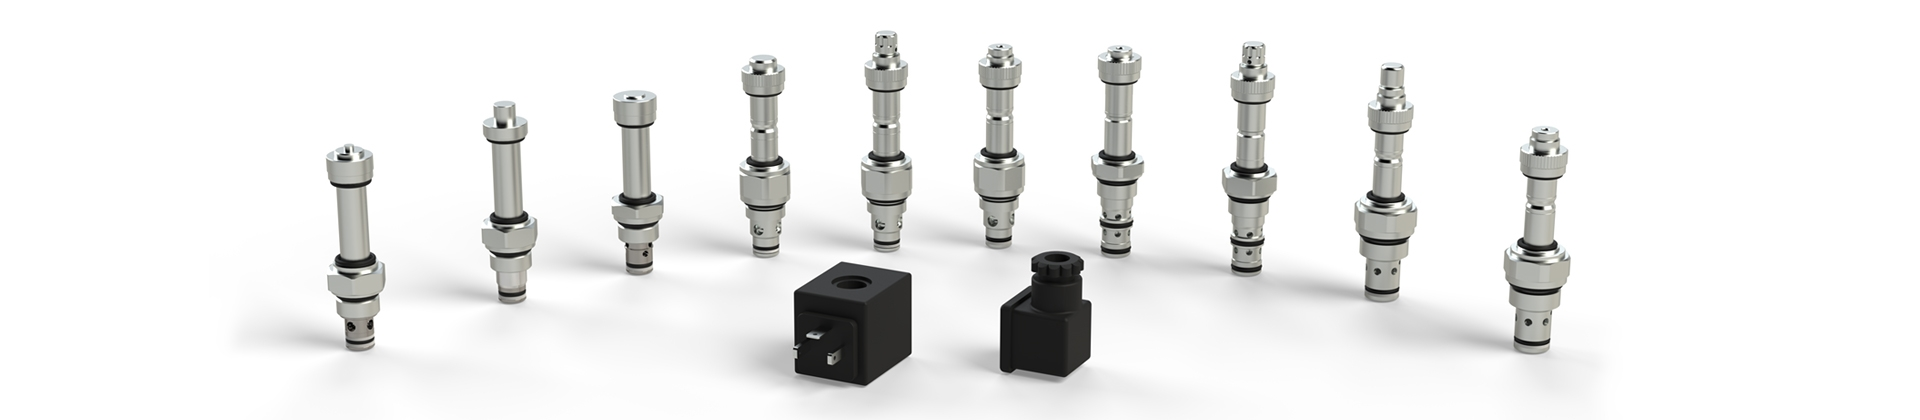 Electrical Valves